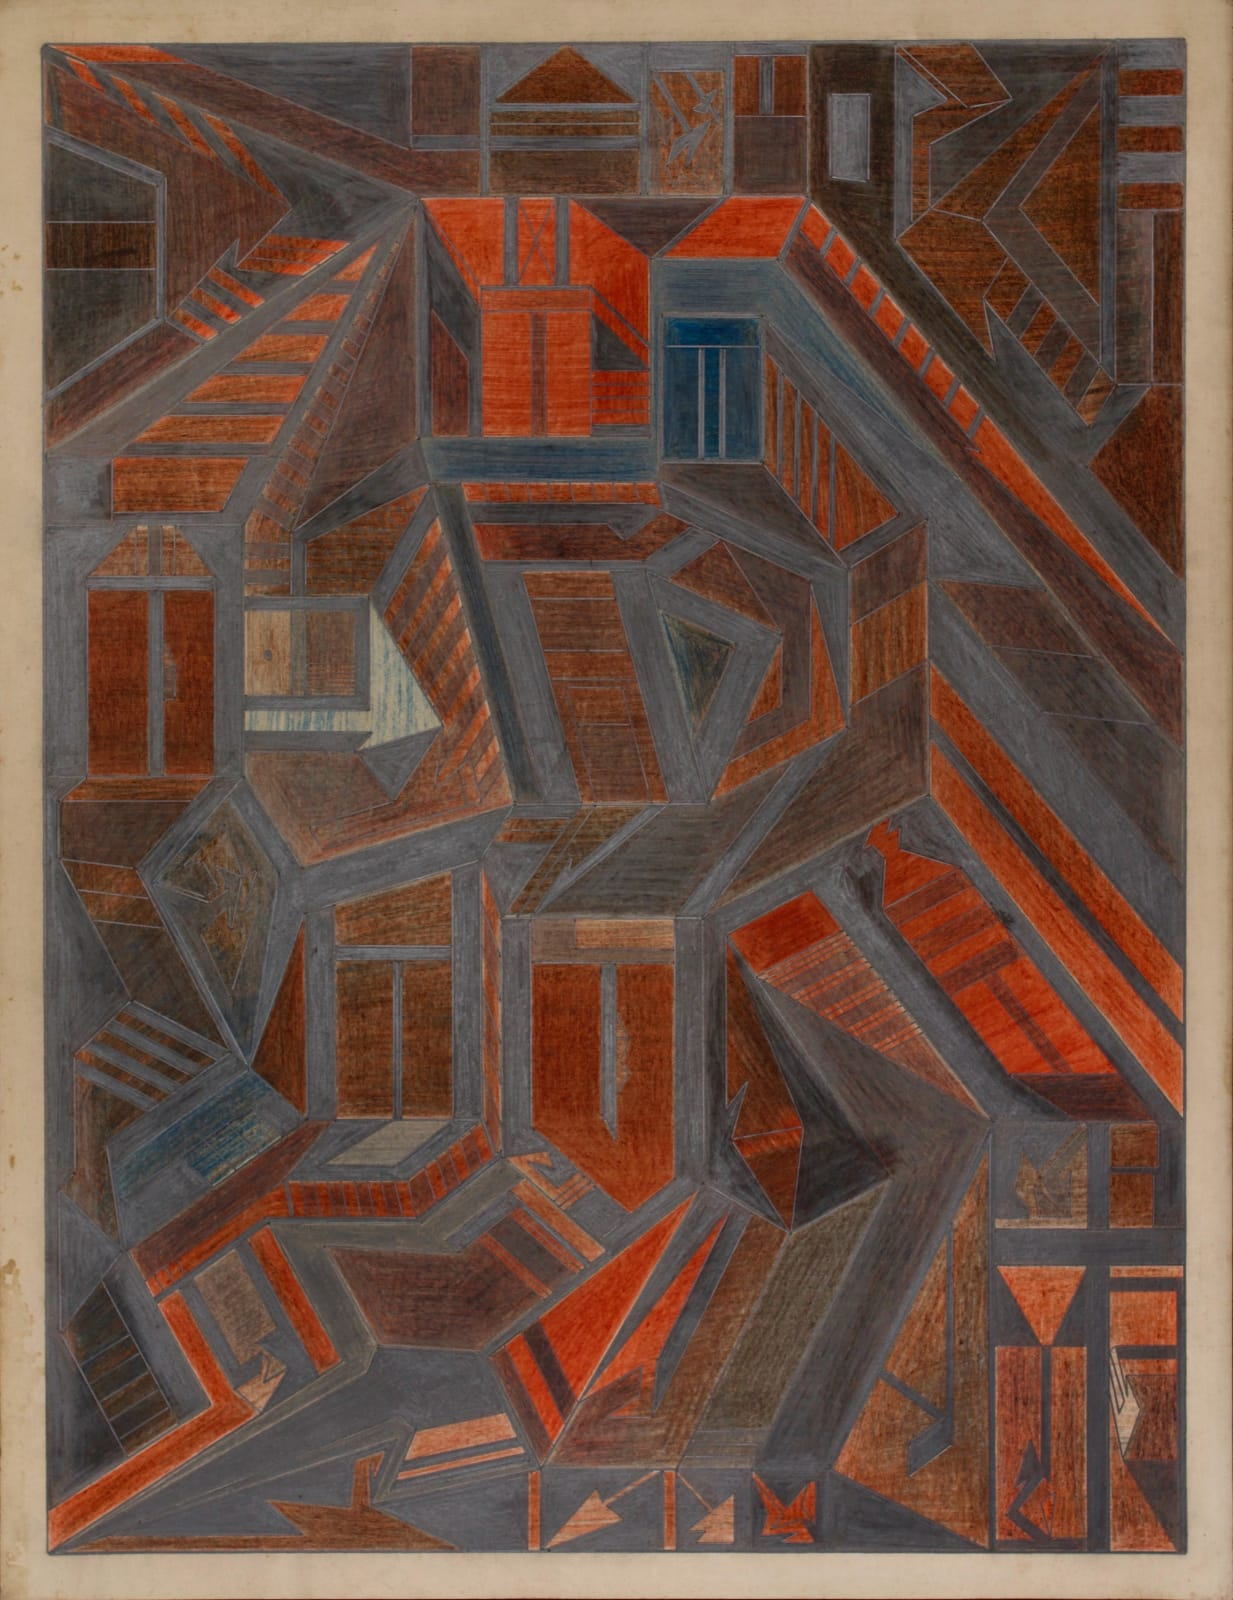 Untitled, ca. 1930 - 55 Colored pencil and graphite on paper 21 x 17 1/2 in. 53.3 x 44.5 cm. (DG 46)